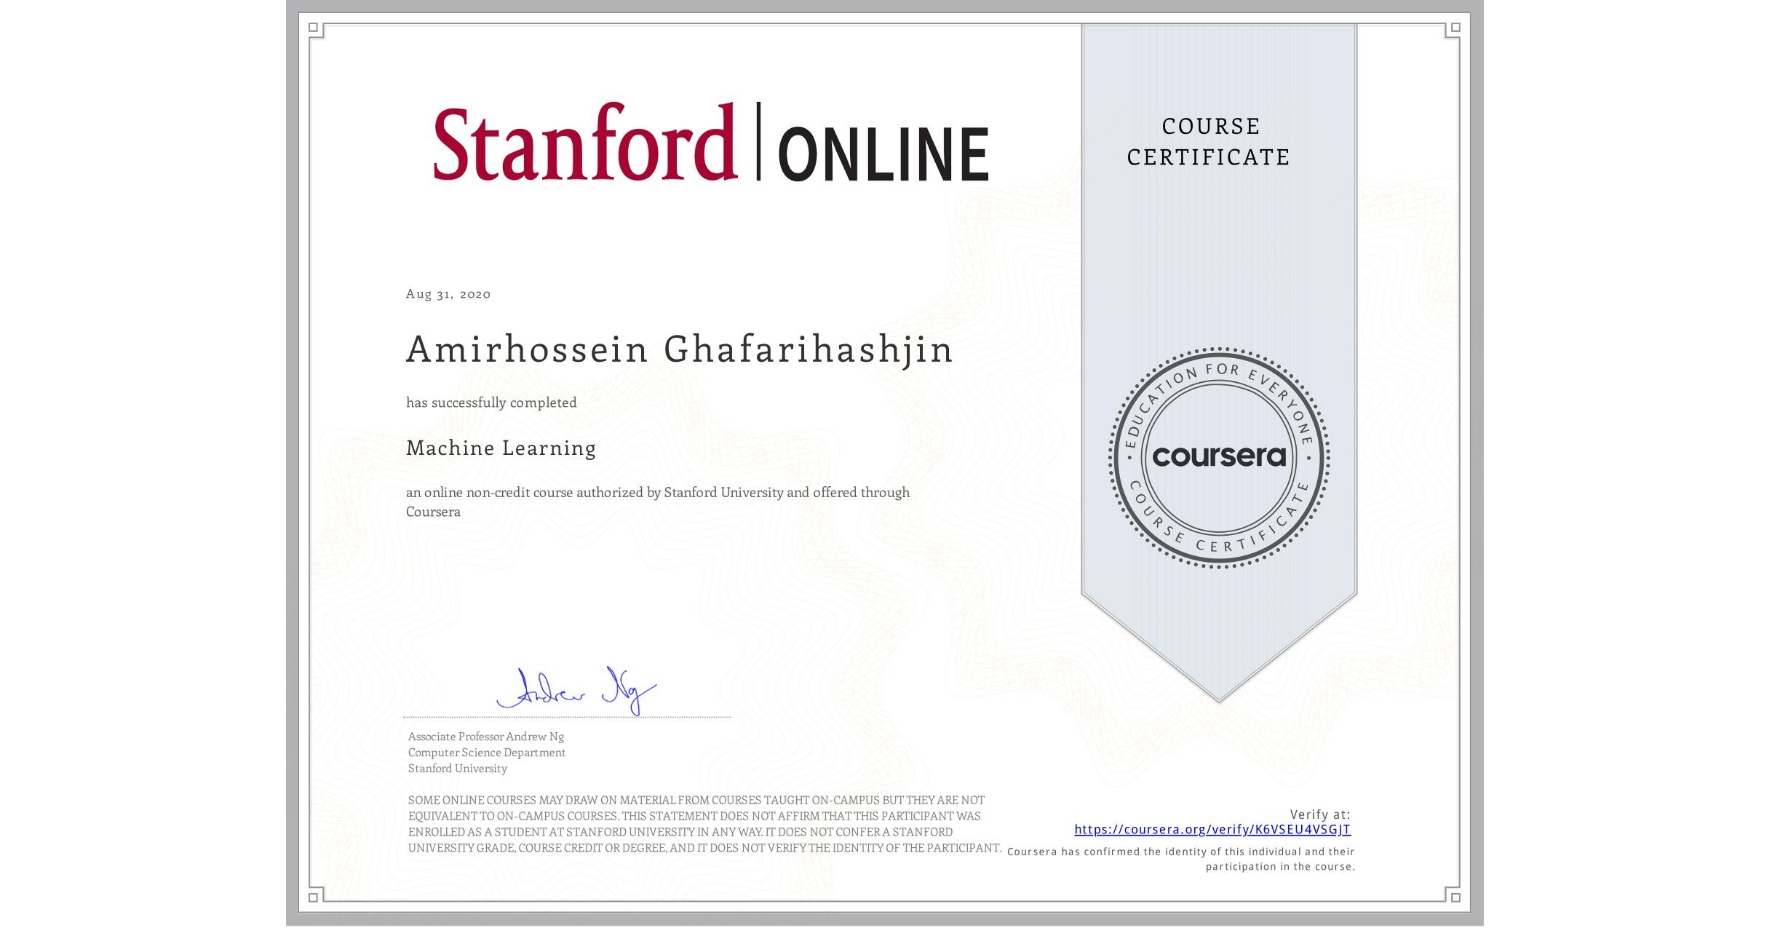 View certificate for Amirhossein Ghafarihashjin, Machine Learning, an online non-credit course authorized by Stanford University and offered through Coursera